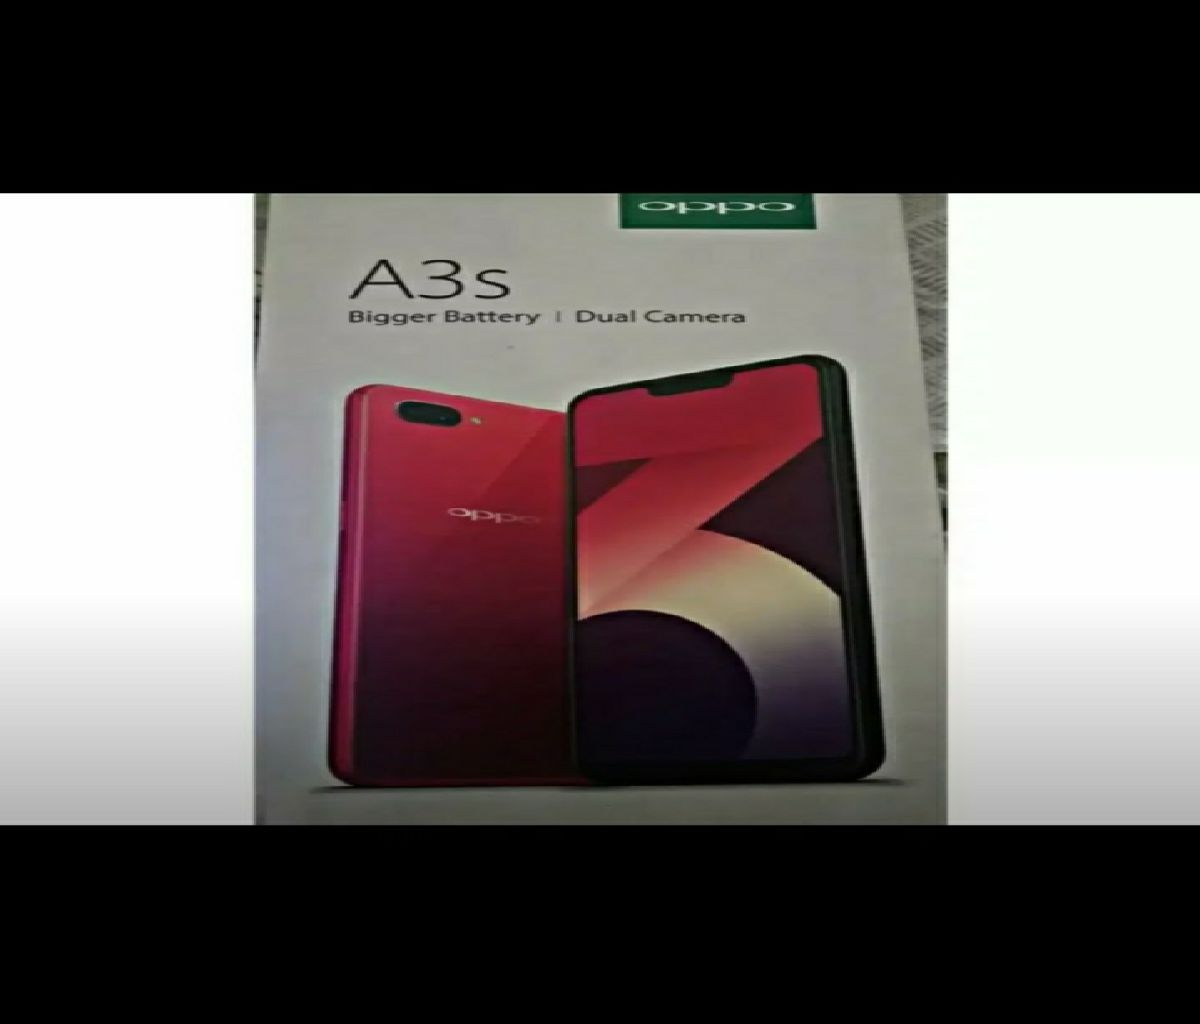 Oppo a3 s with 16 gb memory with 13+8 mp cameras - photo 4